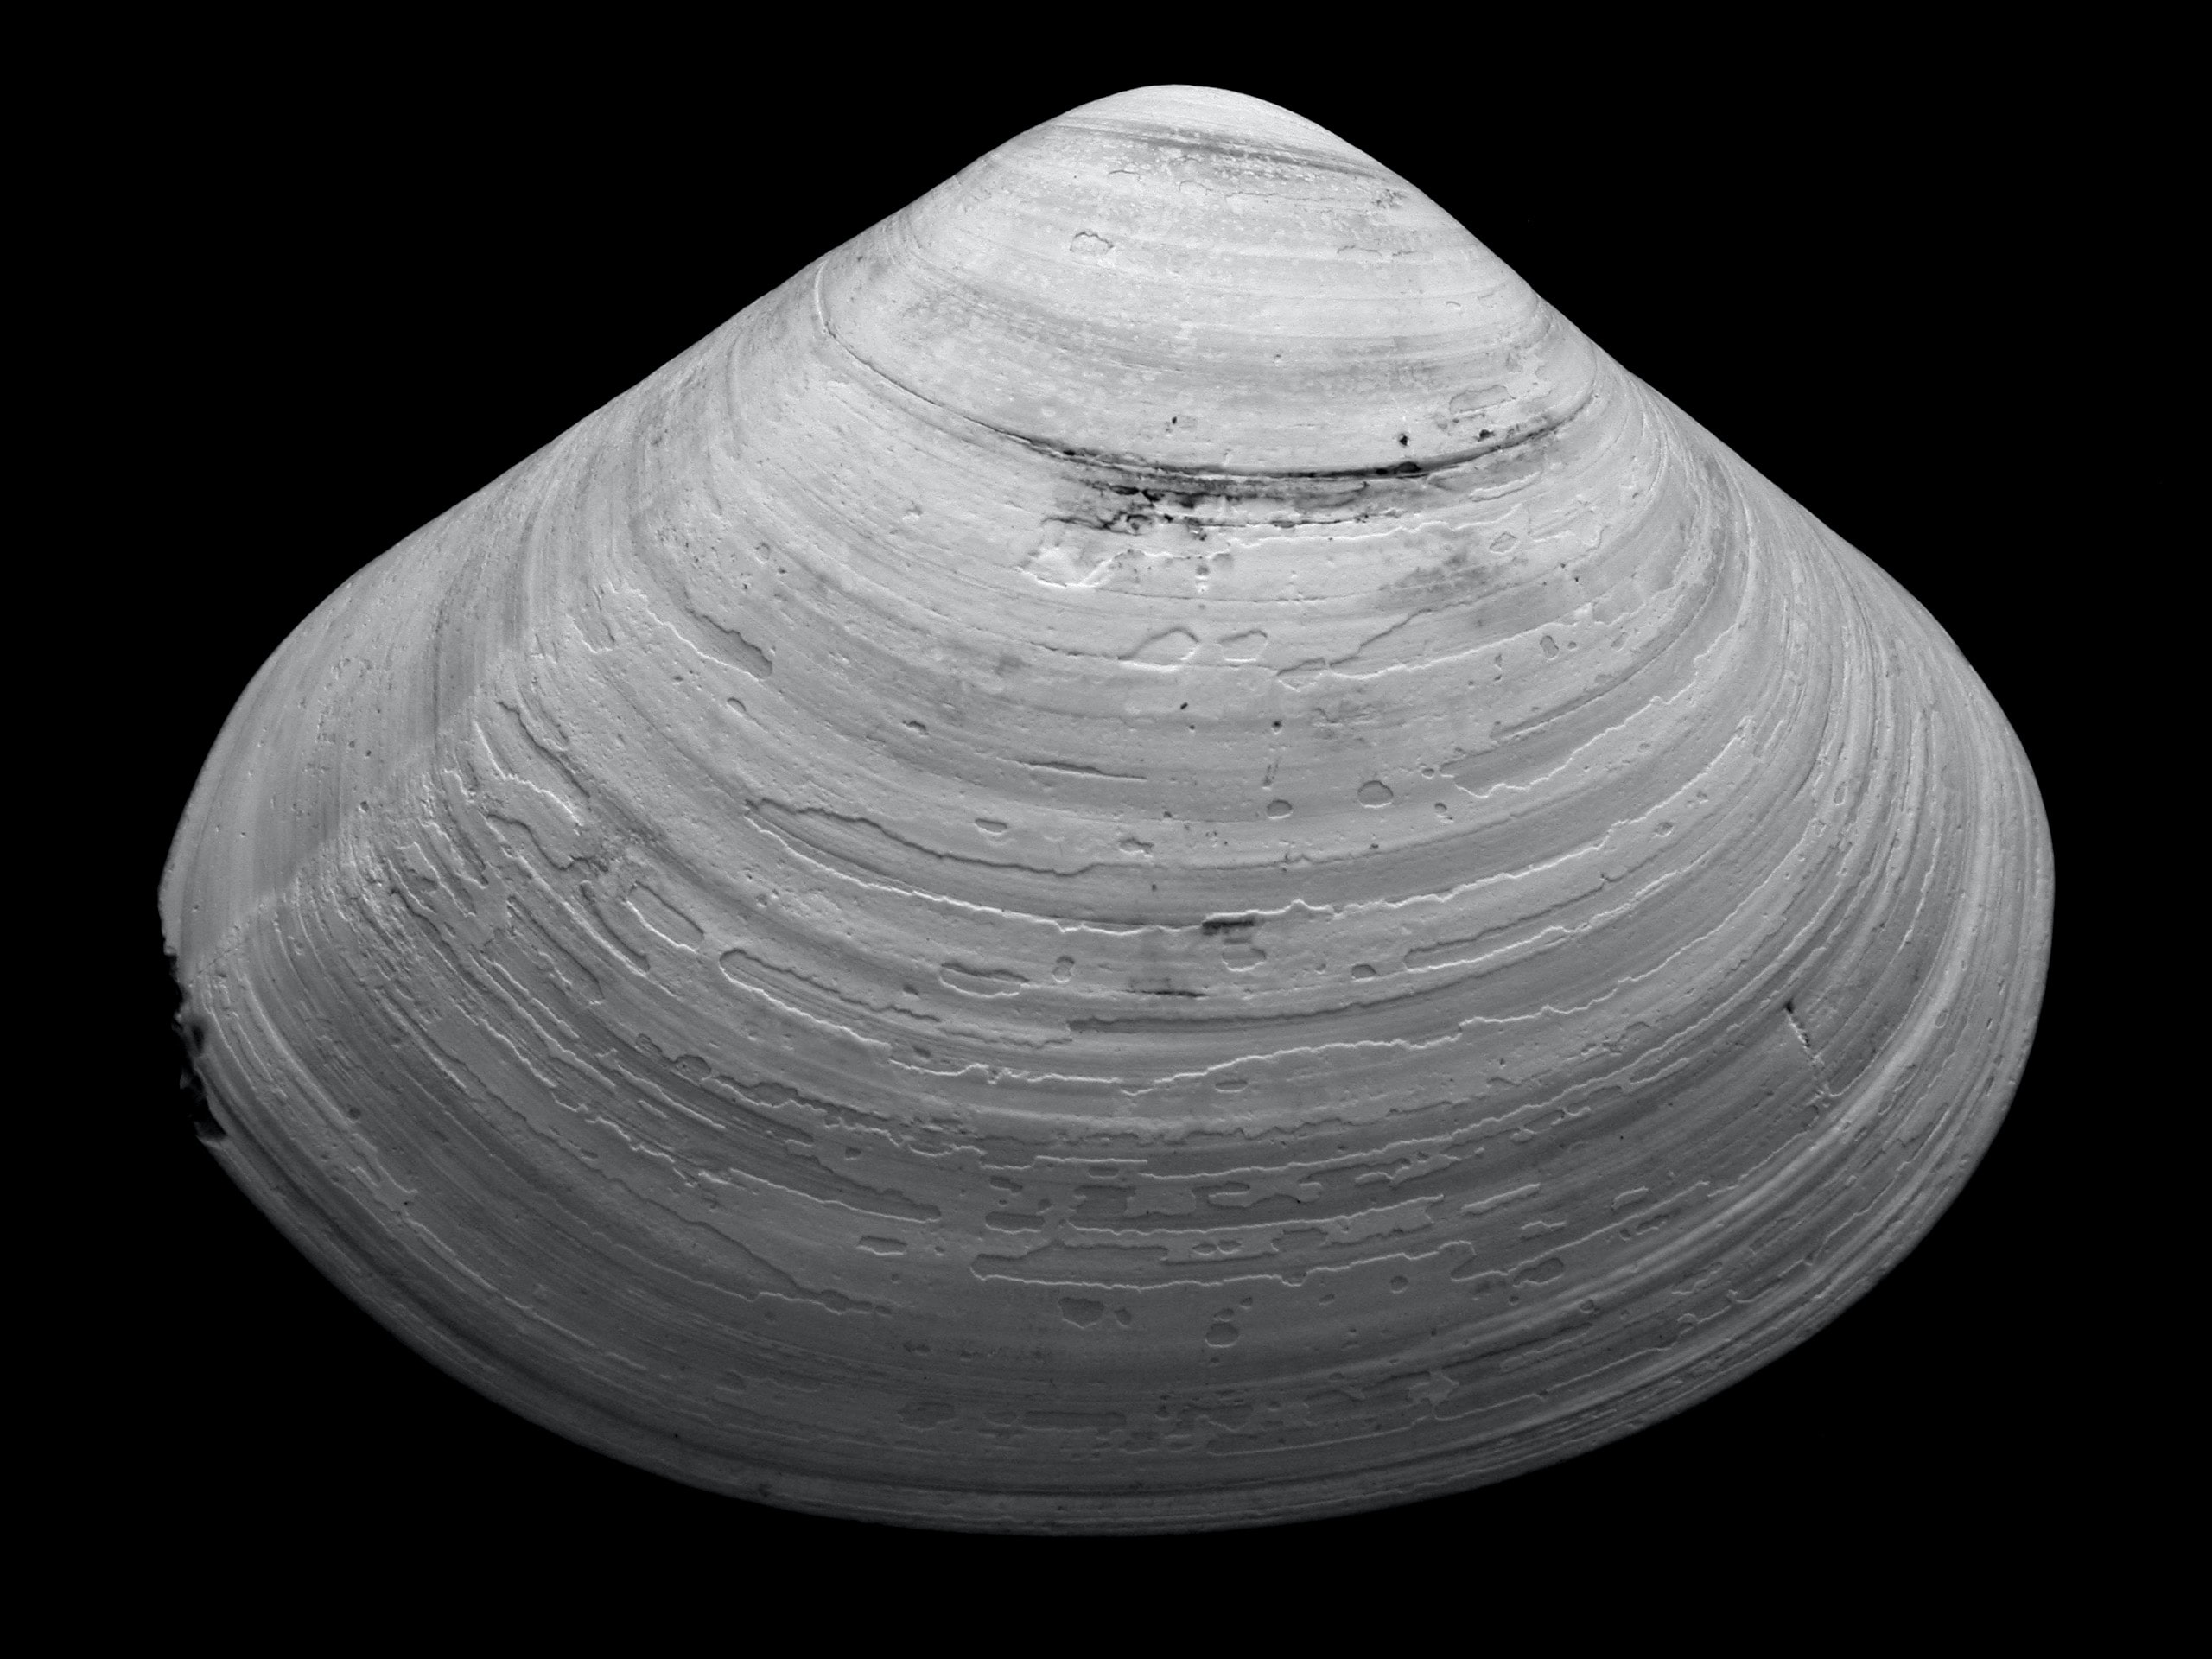 grayscale of seashell against black background